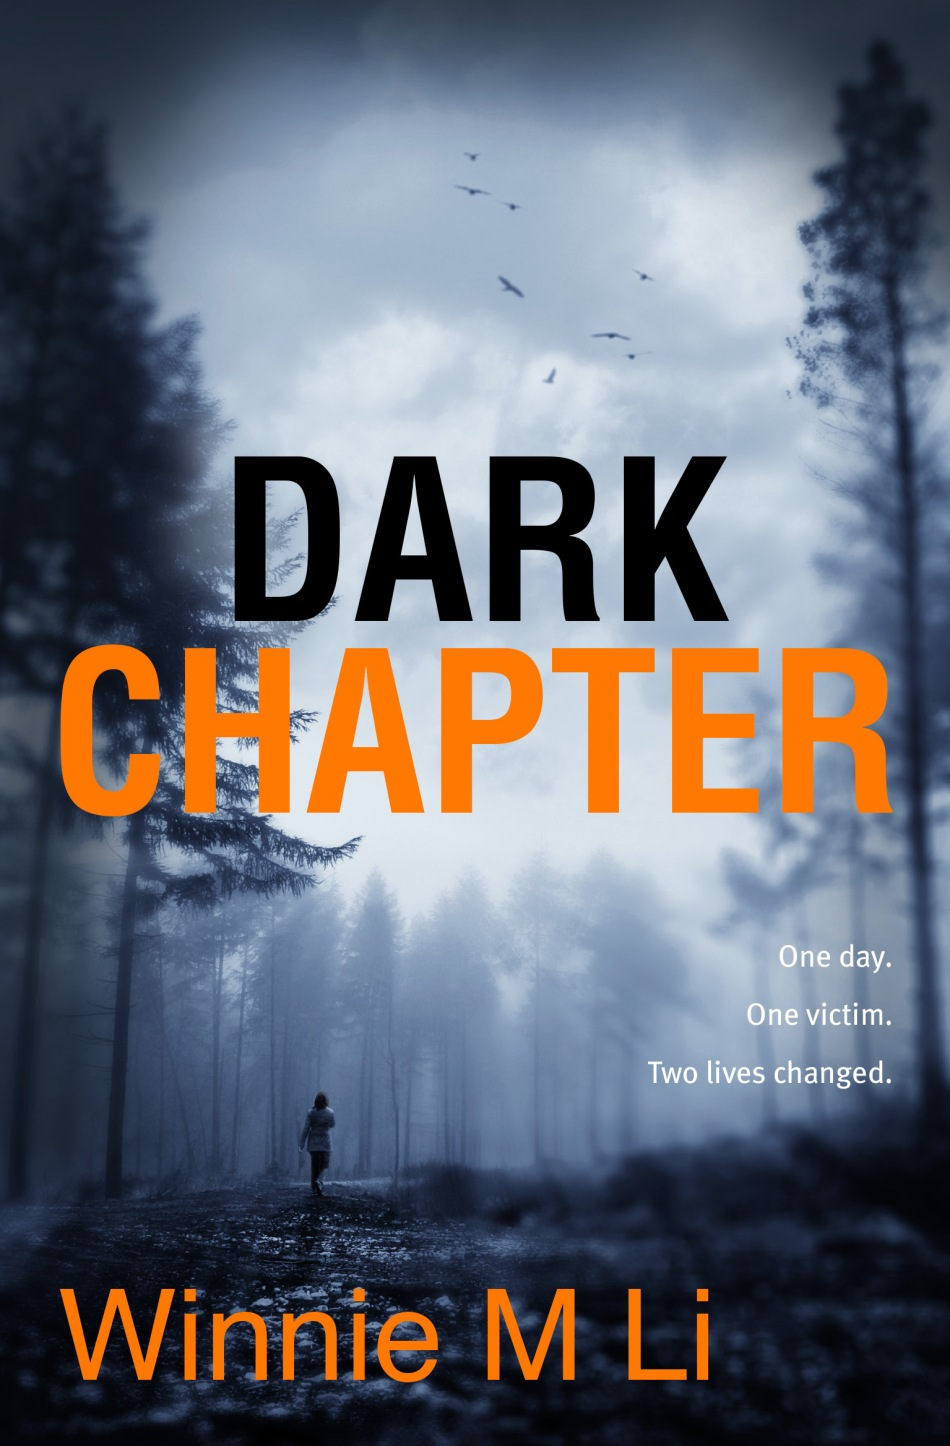 Dark-Chapter-by-Winnie-M-Li-_-Legend-Press